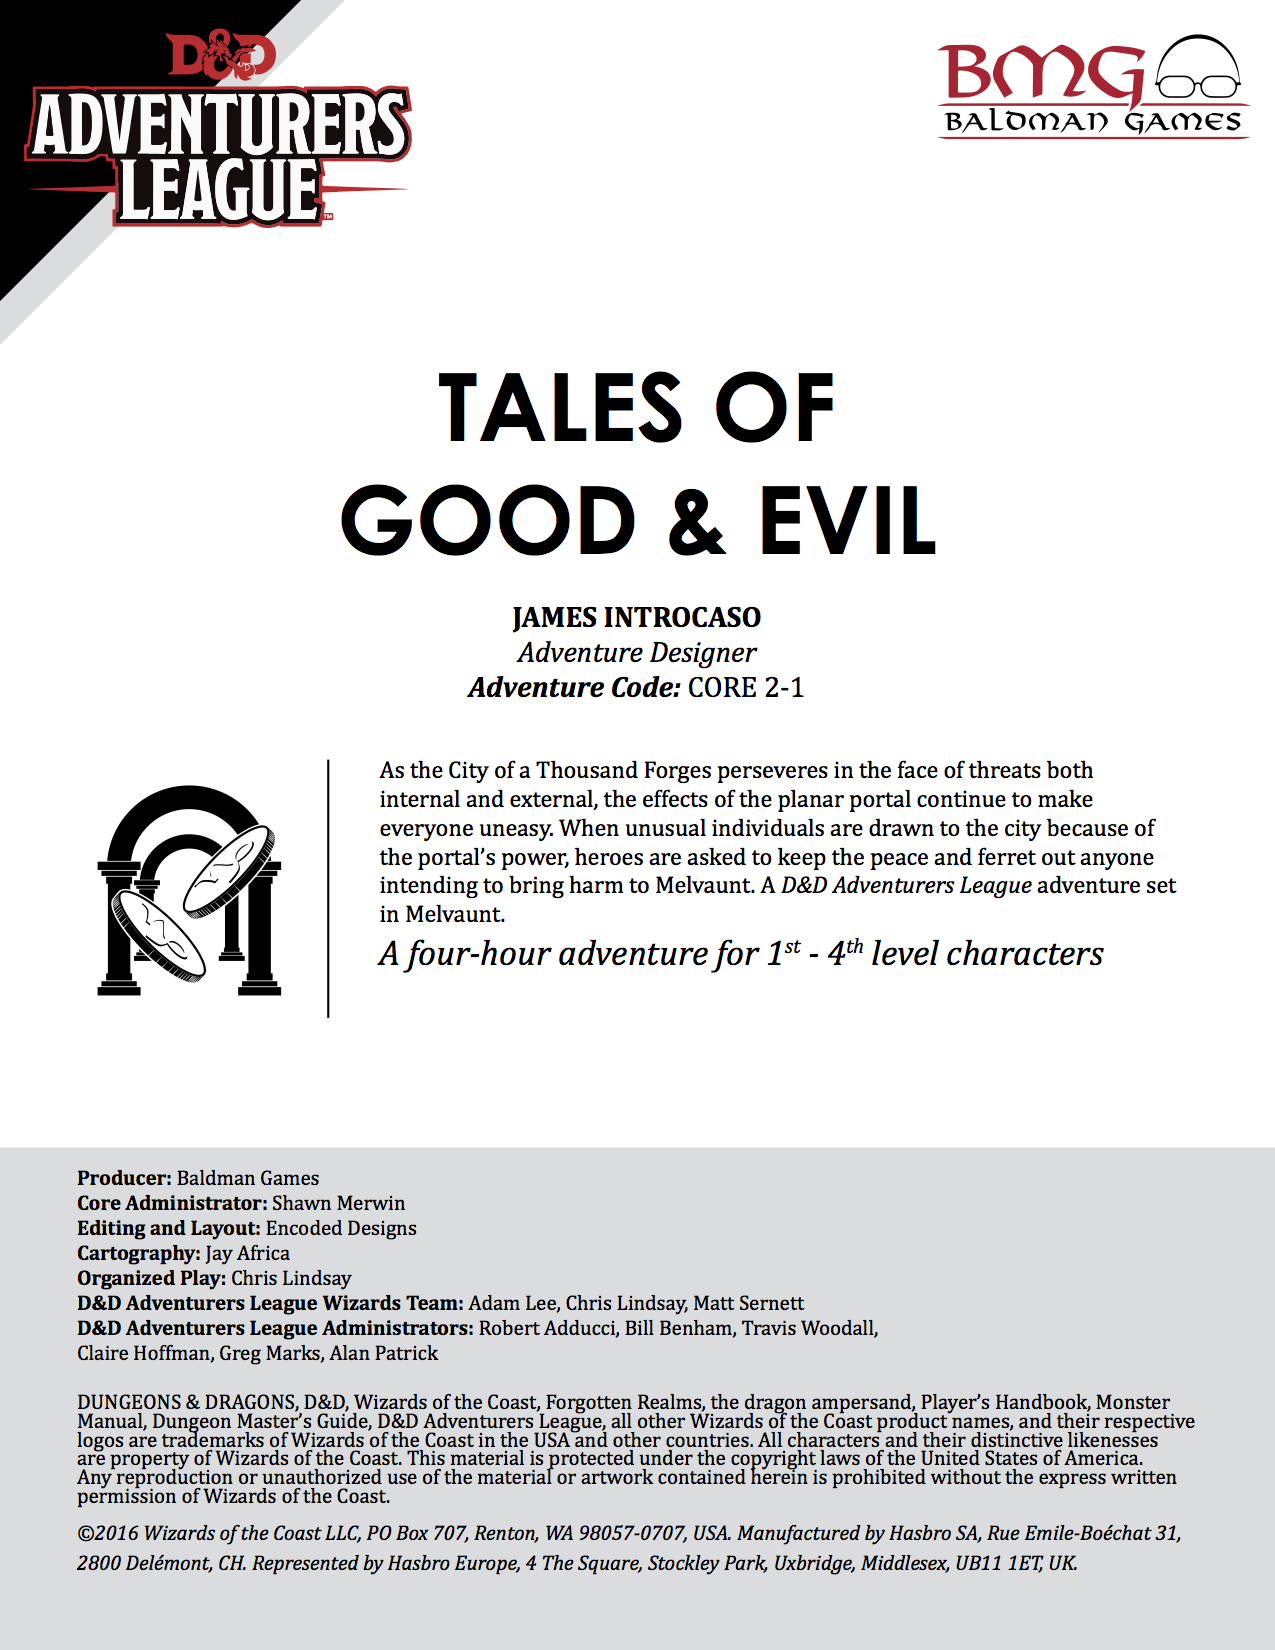 889633-core_2-1_tales_of_good__evil